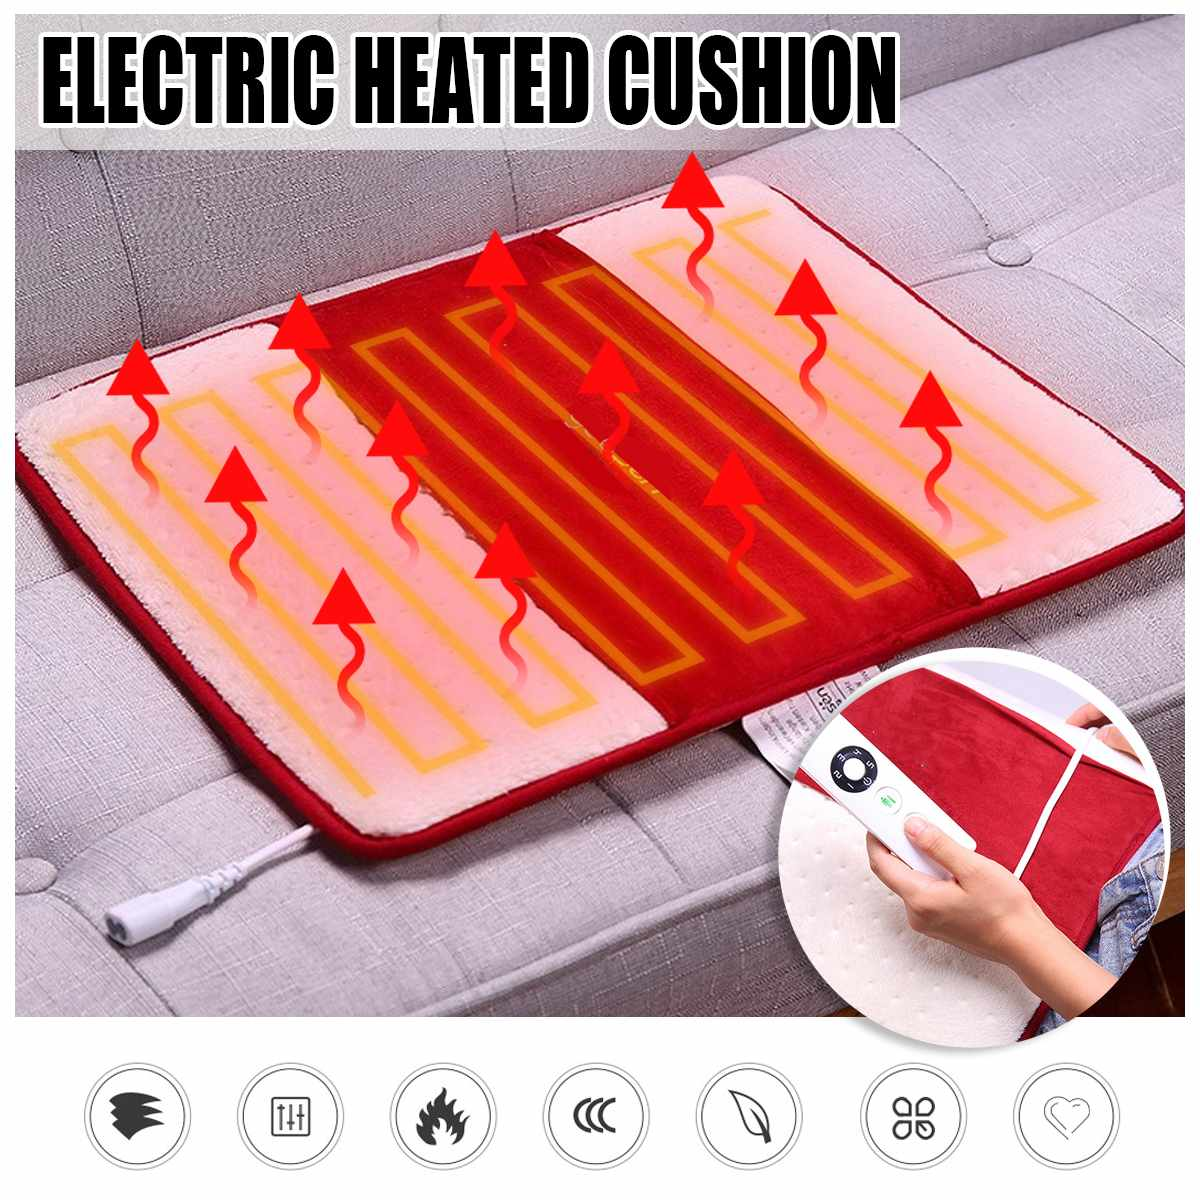 220V Electric Heated Pad Heat Mat Heating Blanket Warming Bed Carpet Feet Cushion Neck Back Shoulder Pain Relief Body Home Offic